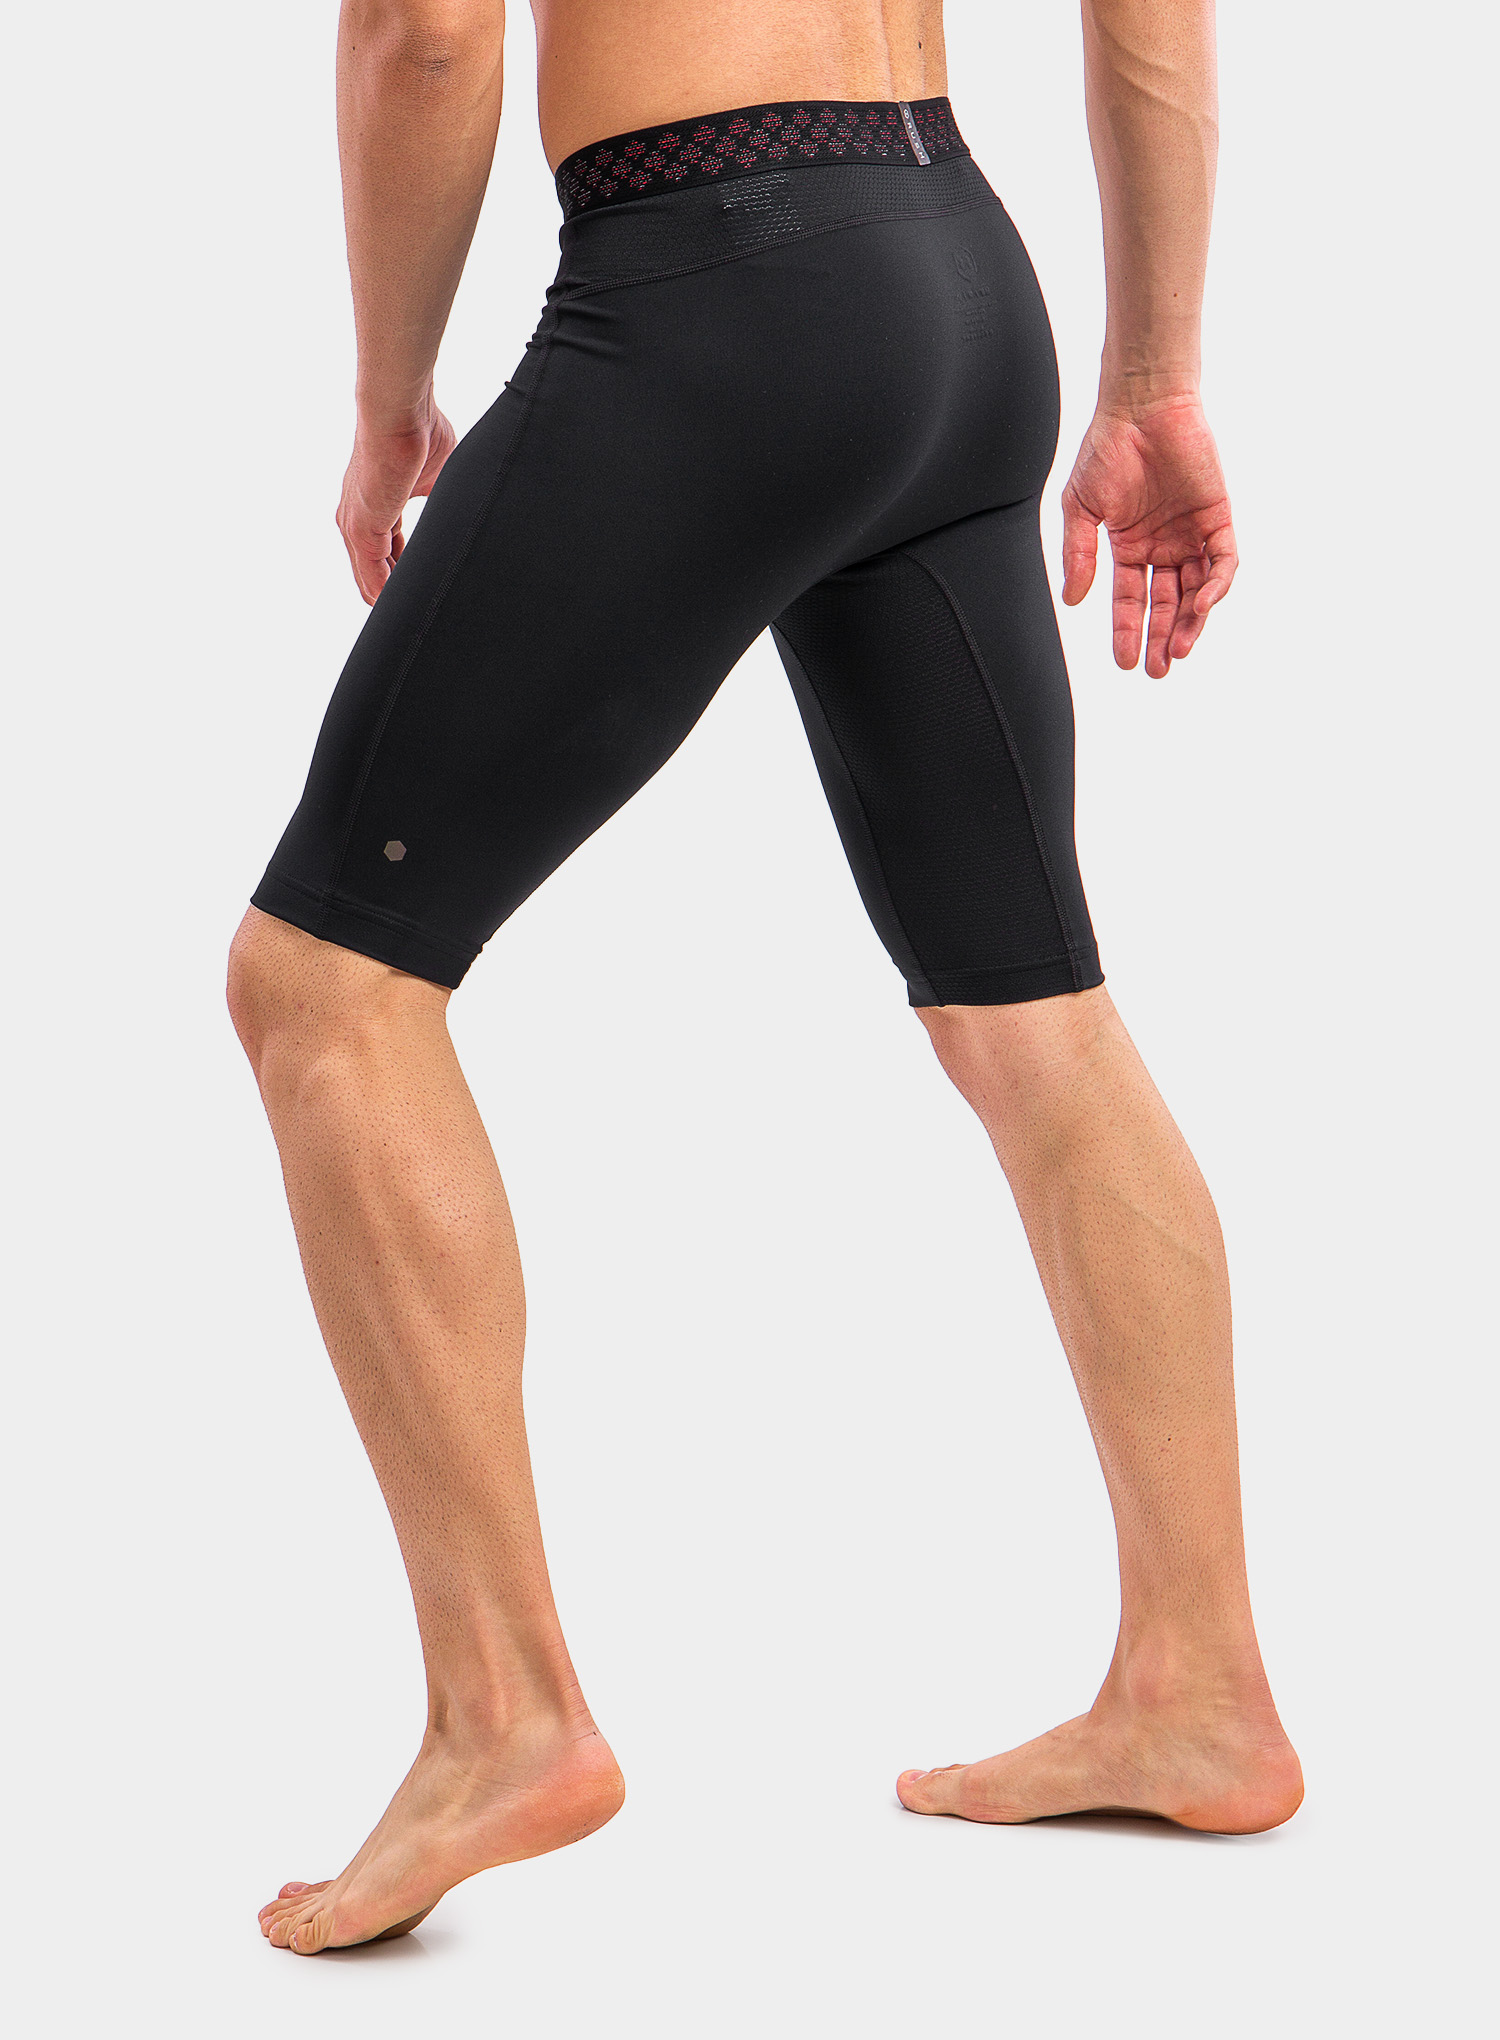 Spodenki Under Armour HG Rush 2.0 Long Shorts - black/black - zdjęcie nr. 7